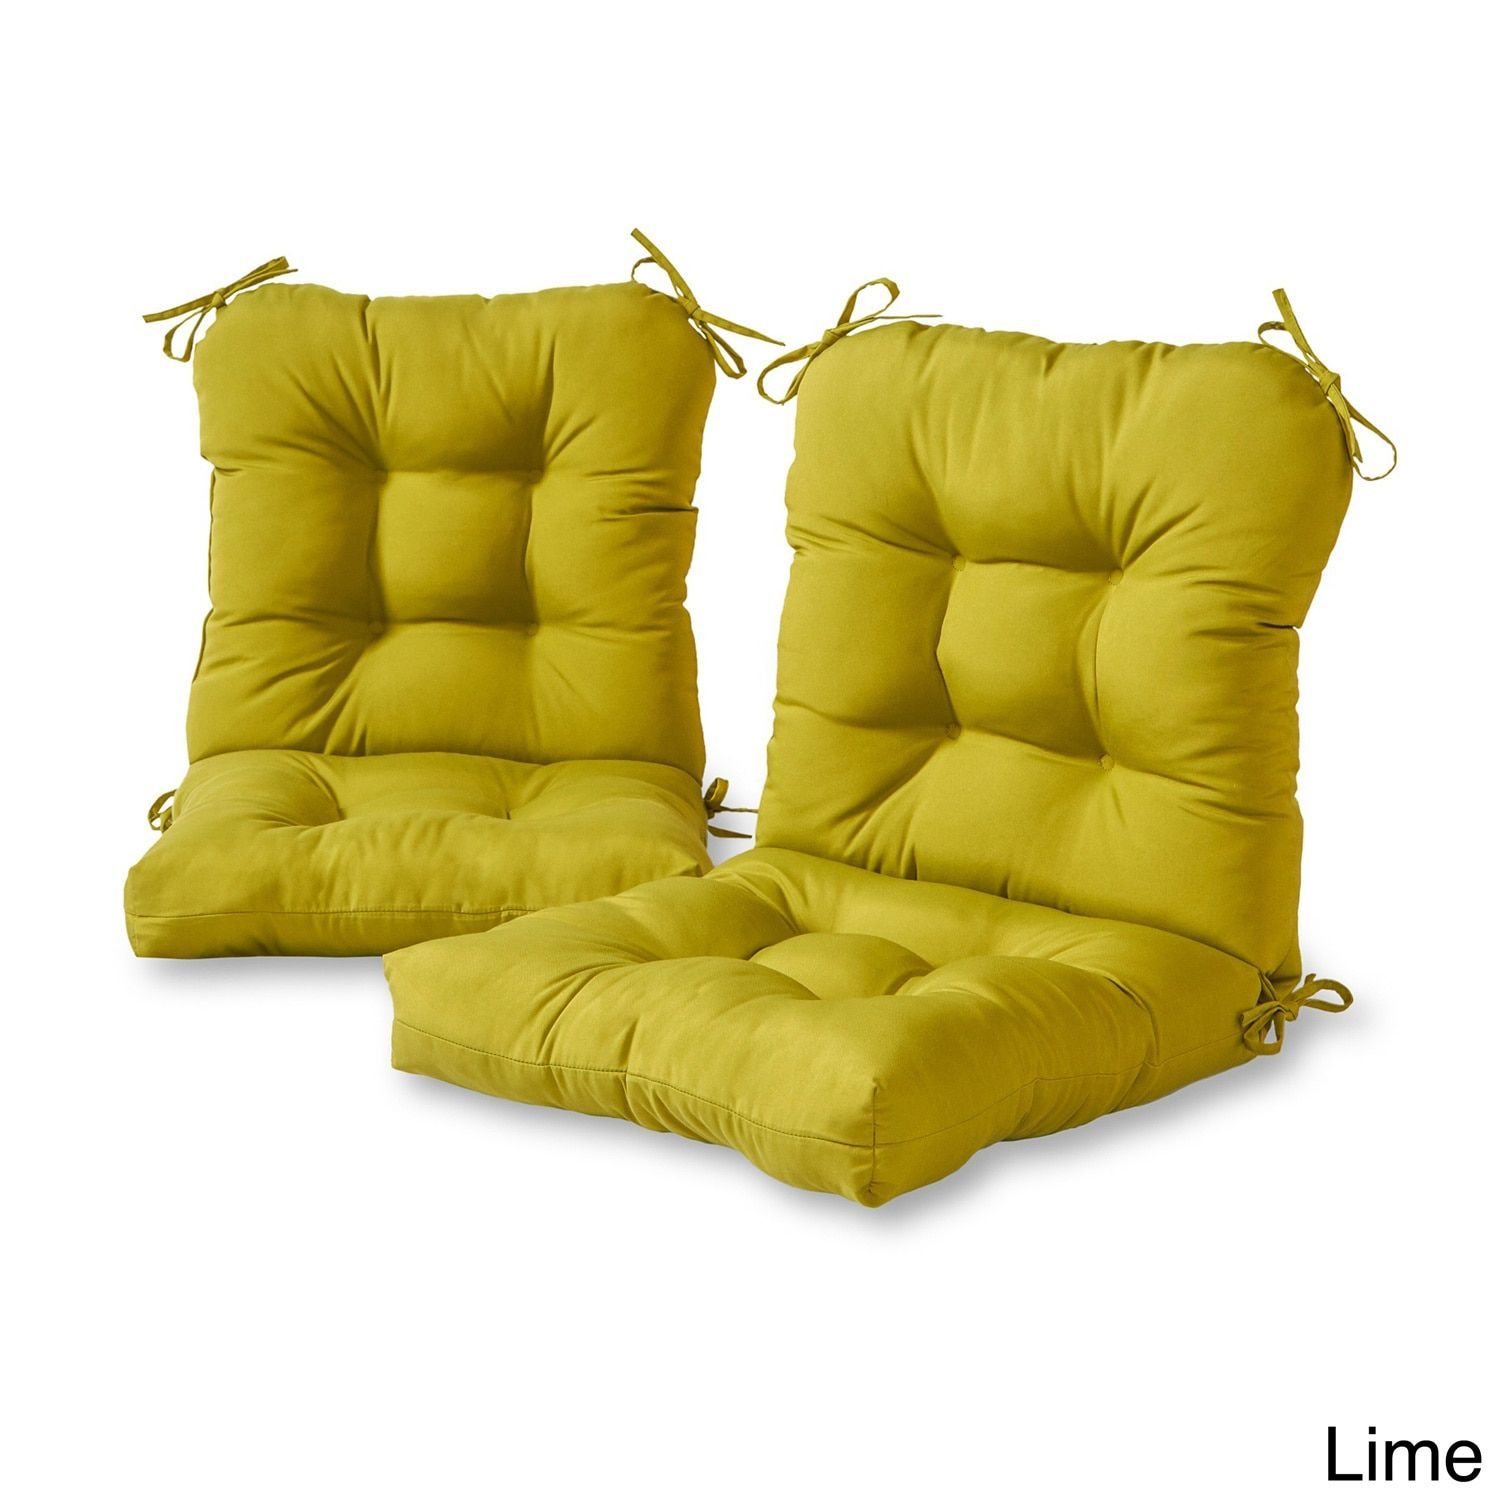 lime green chair pads white wooden rocking chairs outdoor seat back cushions set of 2 plastic cushion